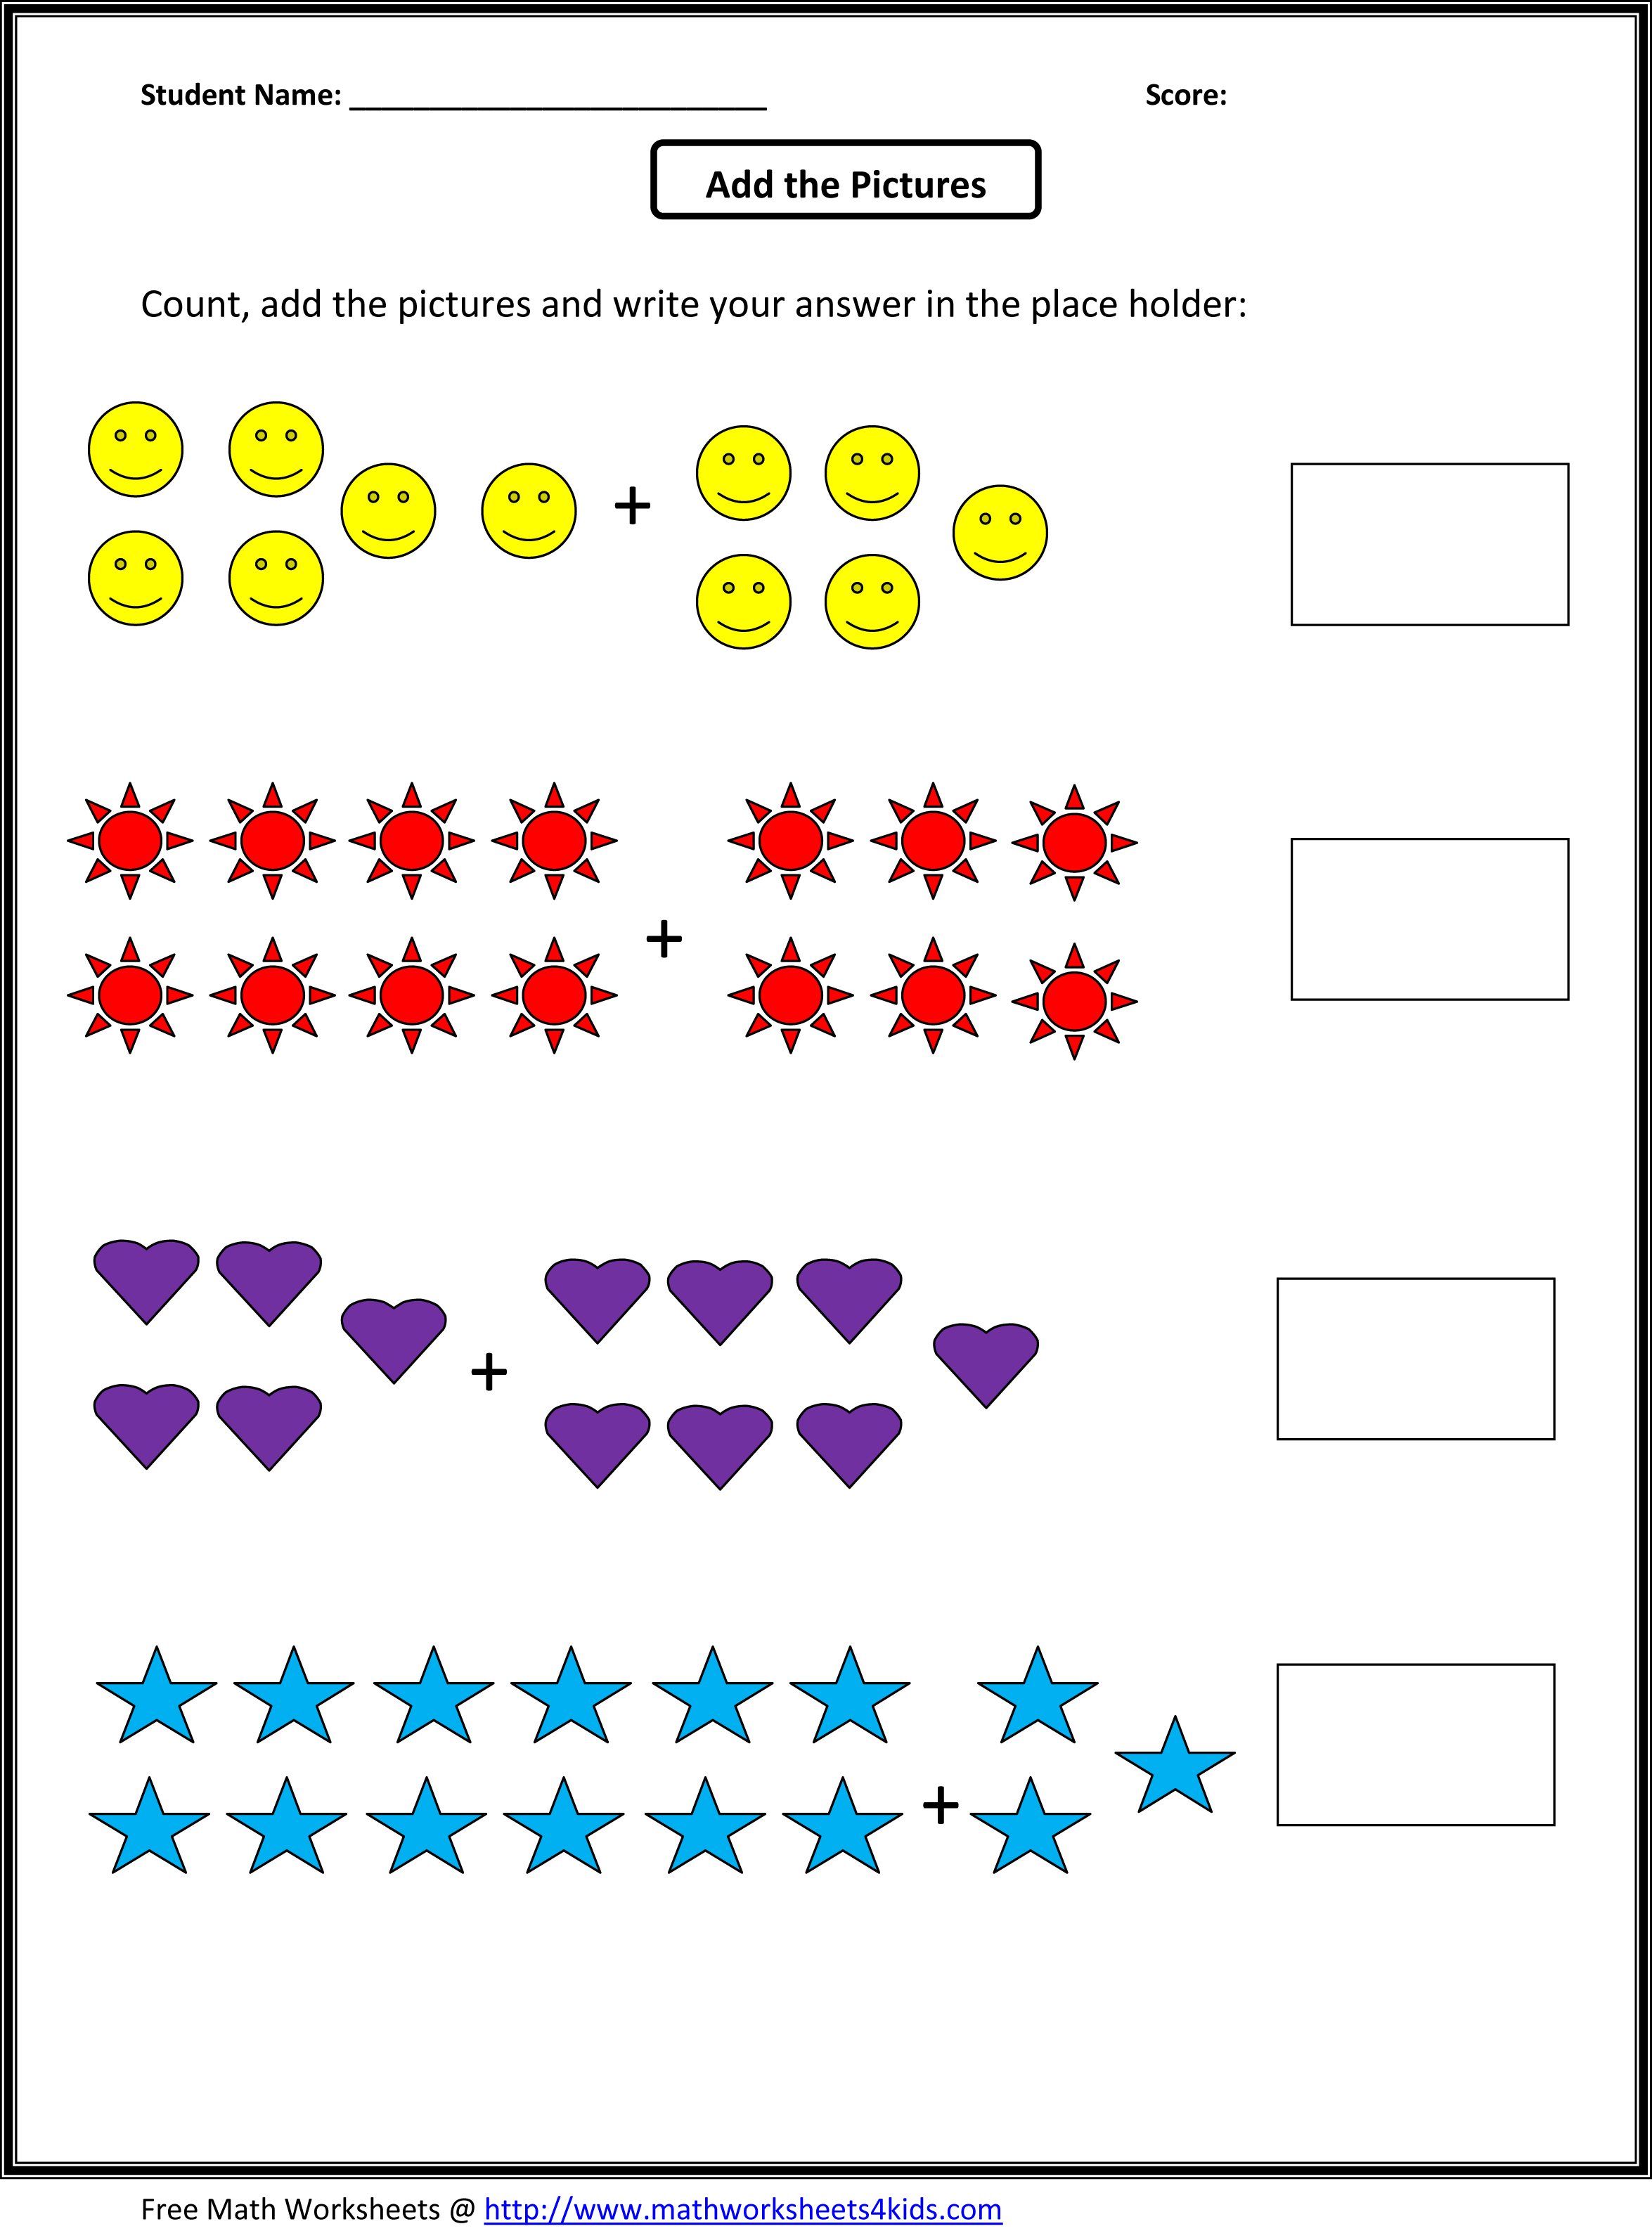 Proatmealus  Remarkable Grade  Maths Worksheet  Reocurent With Heavenly Math Worksheets For St Grade Free  Reocurent With Archaic Cinderella Worksheets Also Capital Gains Tax Worksheet  In Addition Mean Median Mode Range Printable Worksheets And Phases Of The Moon Printable Worksheets As Well As Number Bonds Worksheet Additionally How To Compare Two Excel Worksheets From Reocurentcom With Proatmealus  Heavenly Grade  Maths Worksheet  Reocurent With Archaic Math Worksheets For St Grade Free  Reocurent And Remarkable Cinderella Worksheets Also Capital Gains Tax Worksheet  In Addition Mean Median Mode Range Printable Worksheets From Reocurentcom